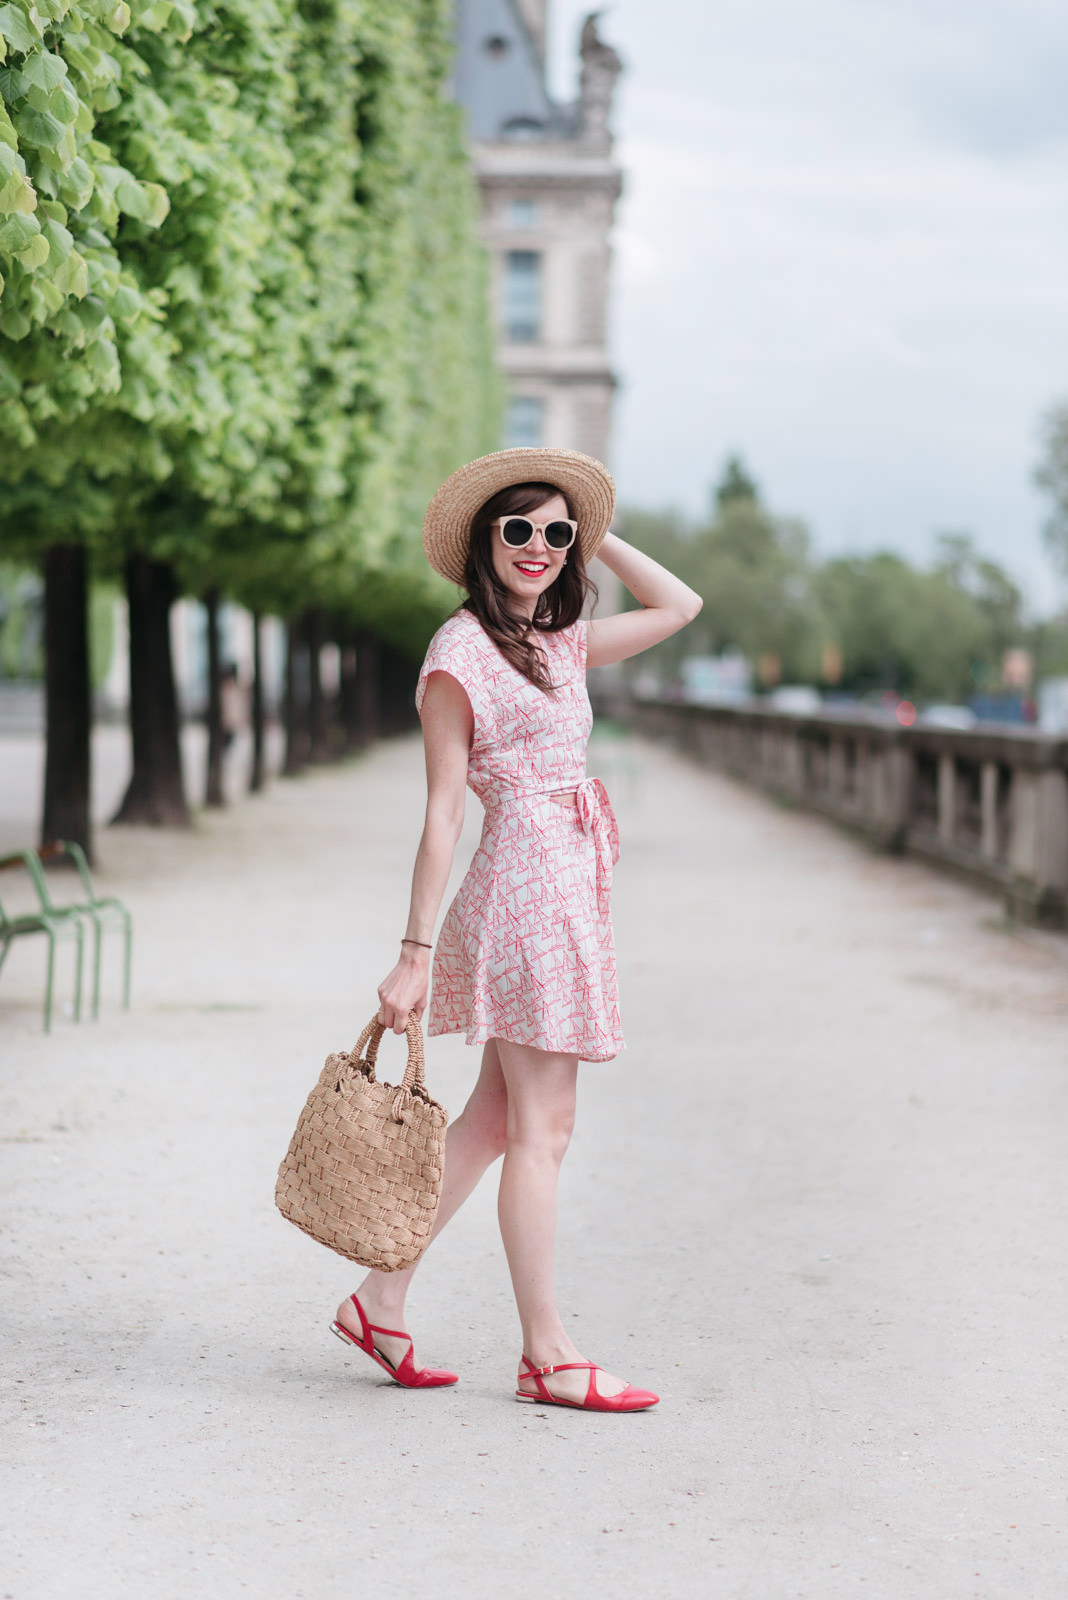 Blog-Mode-And-The-City-Looks-la-robe-a-petits-bateaux-7